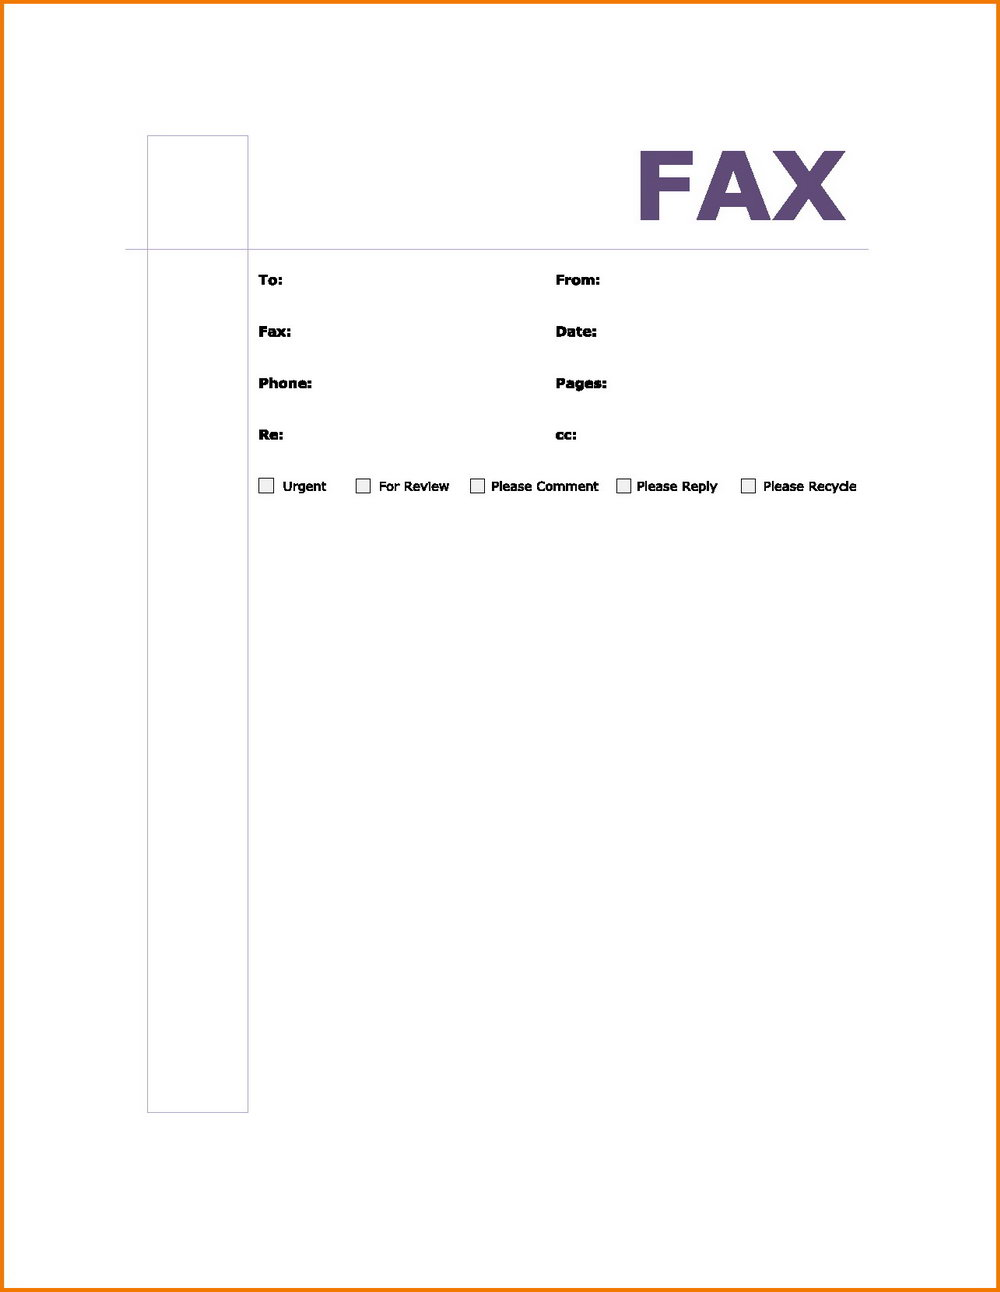 Blank Fax Cover Sheet Template Word